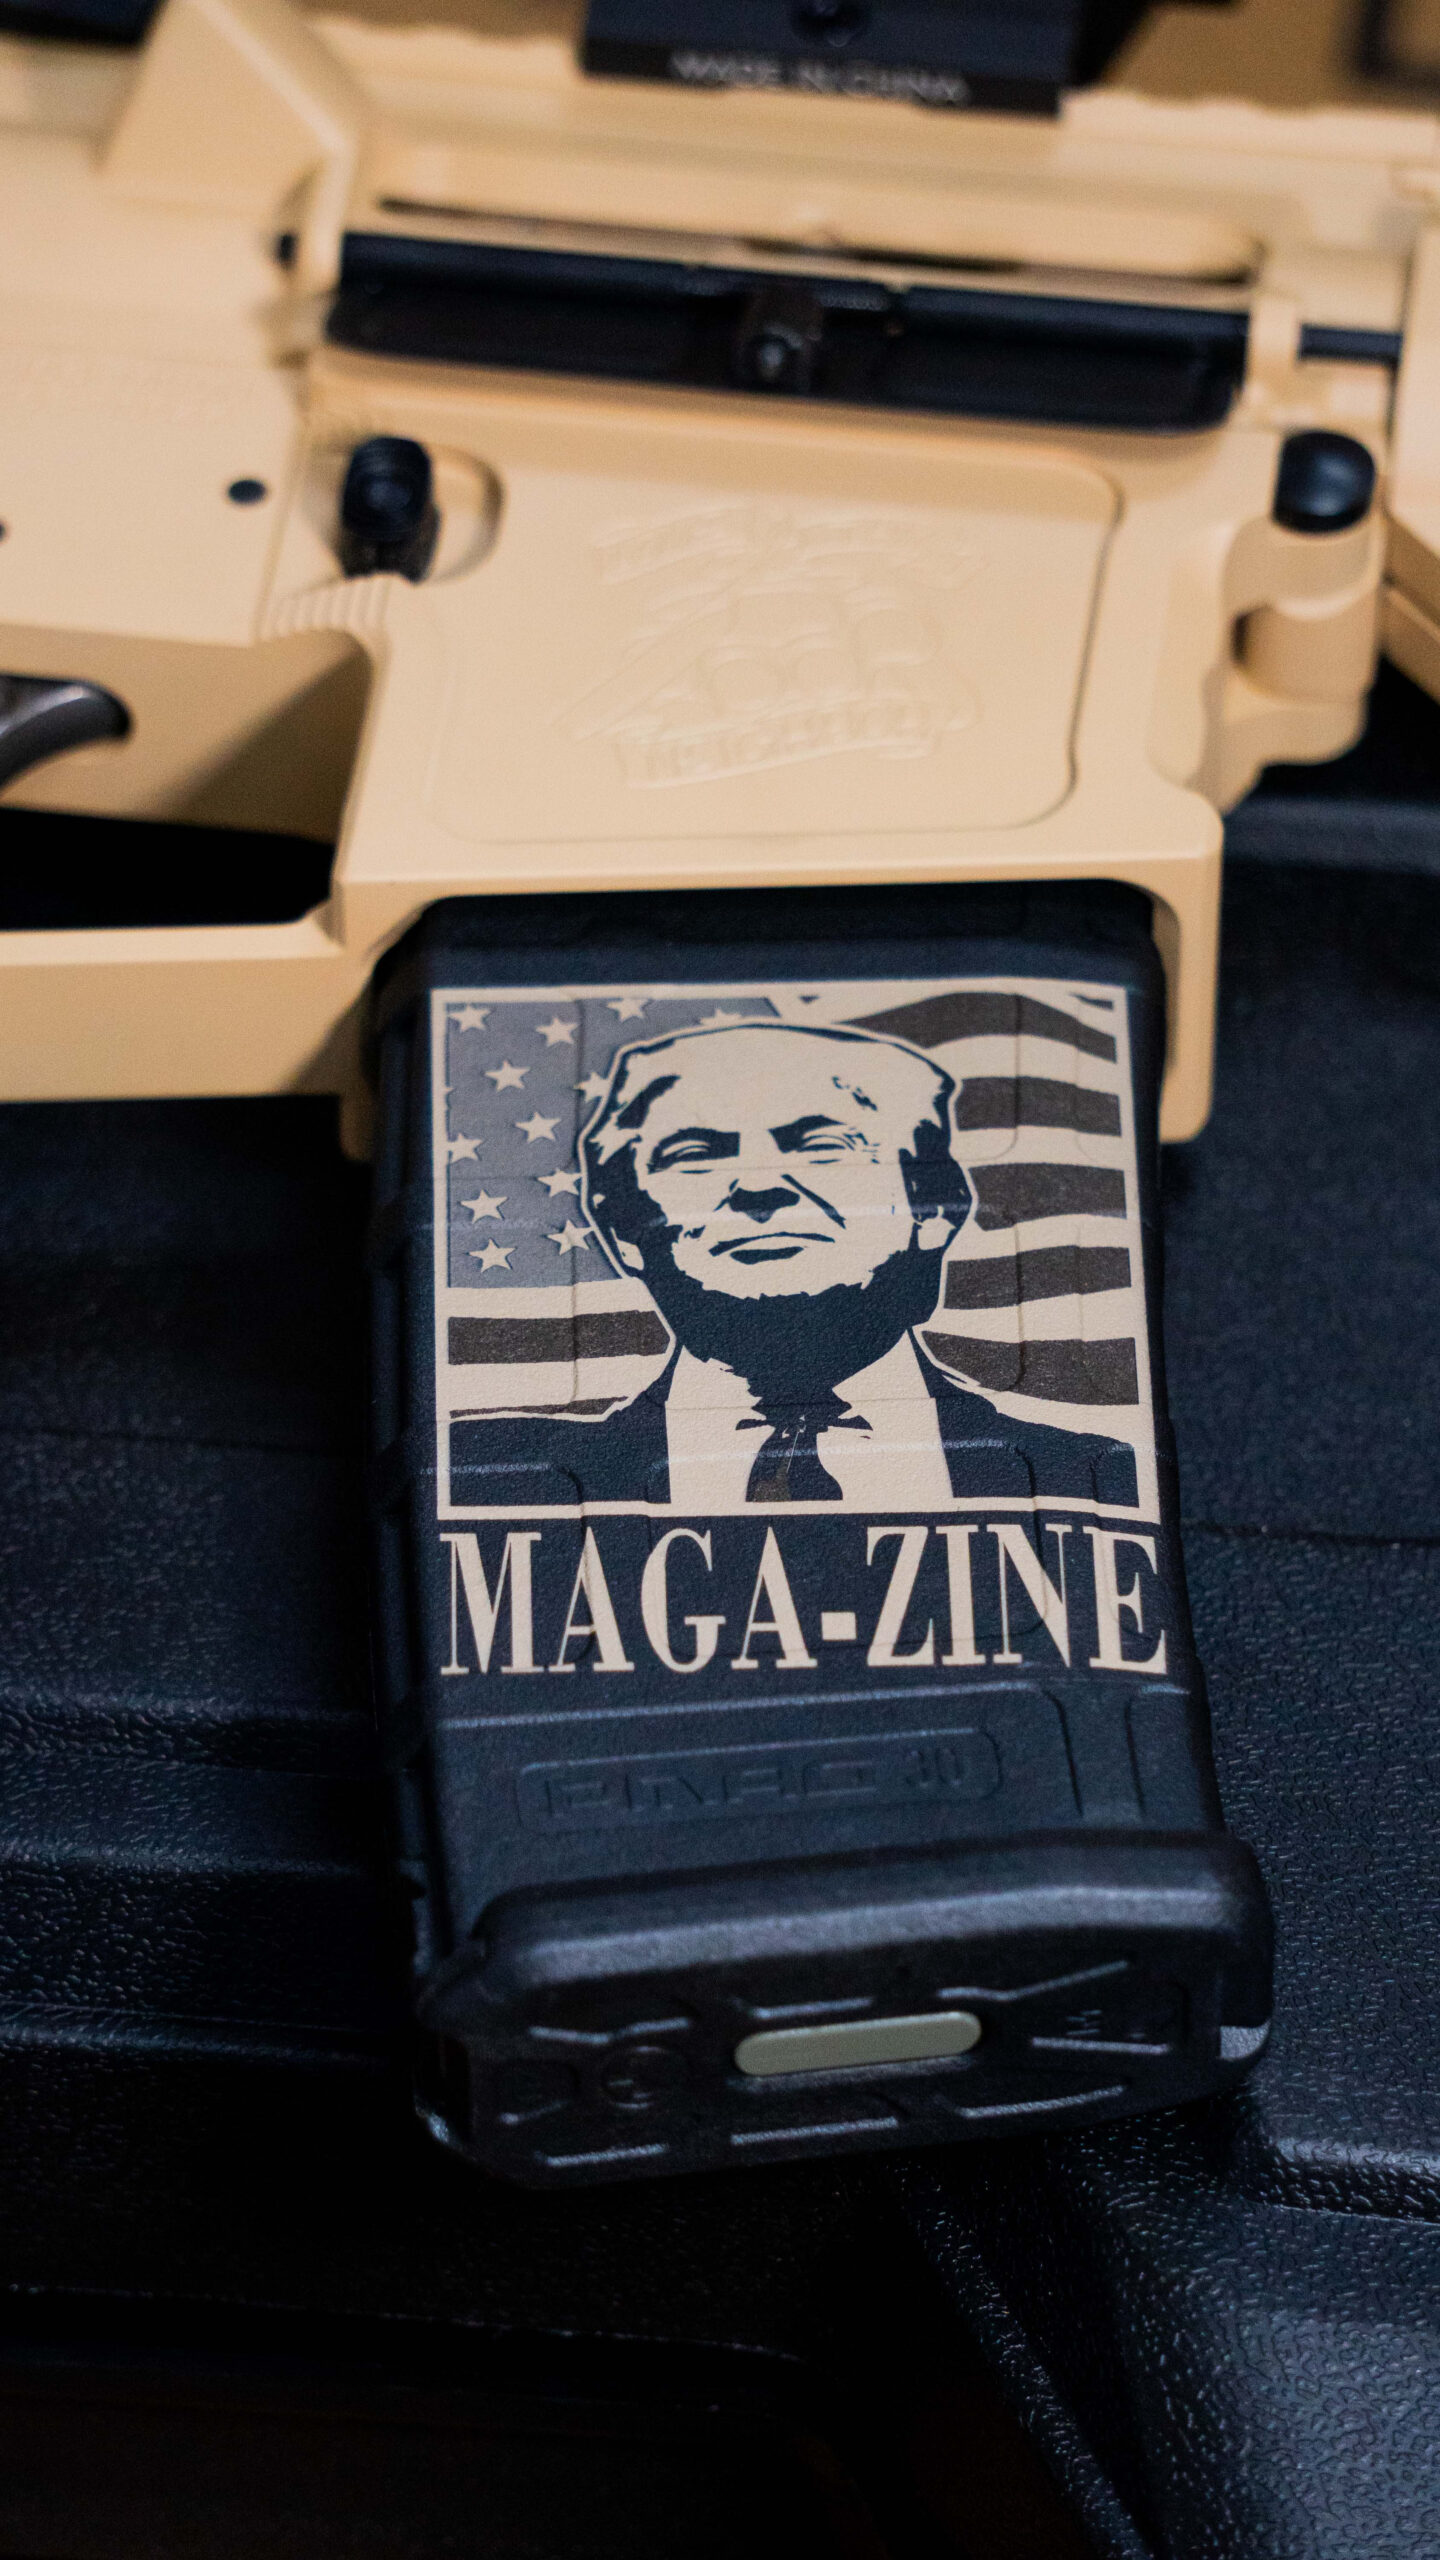 MAGA-zine decal on magazine